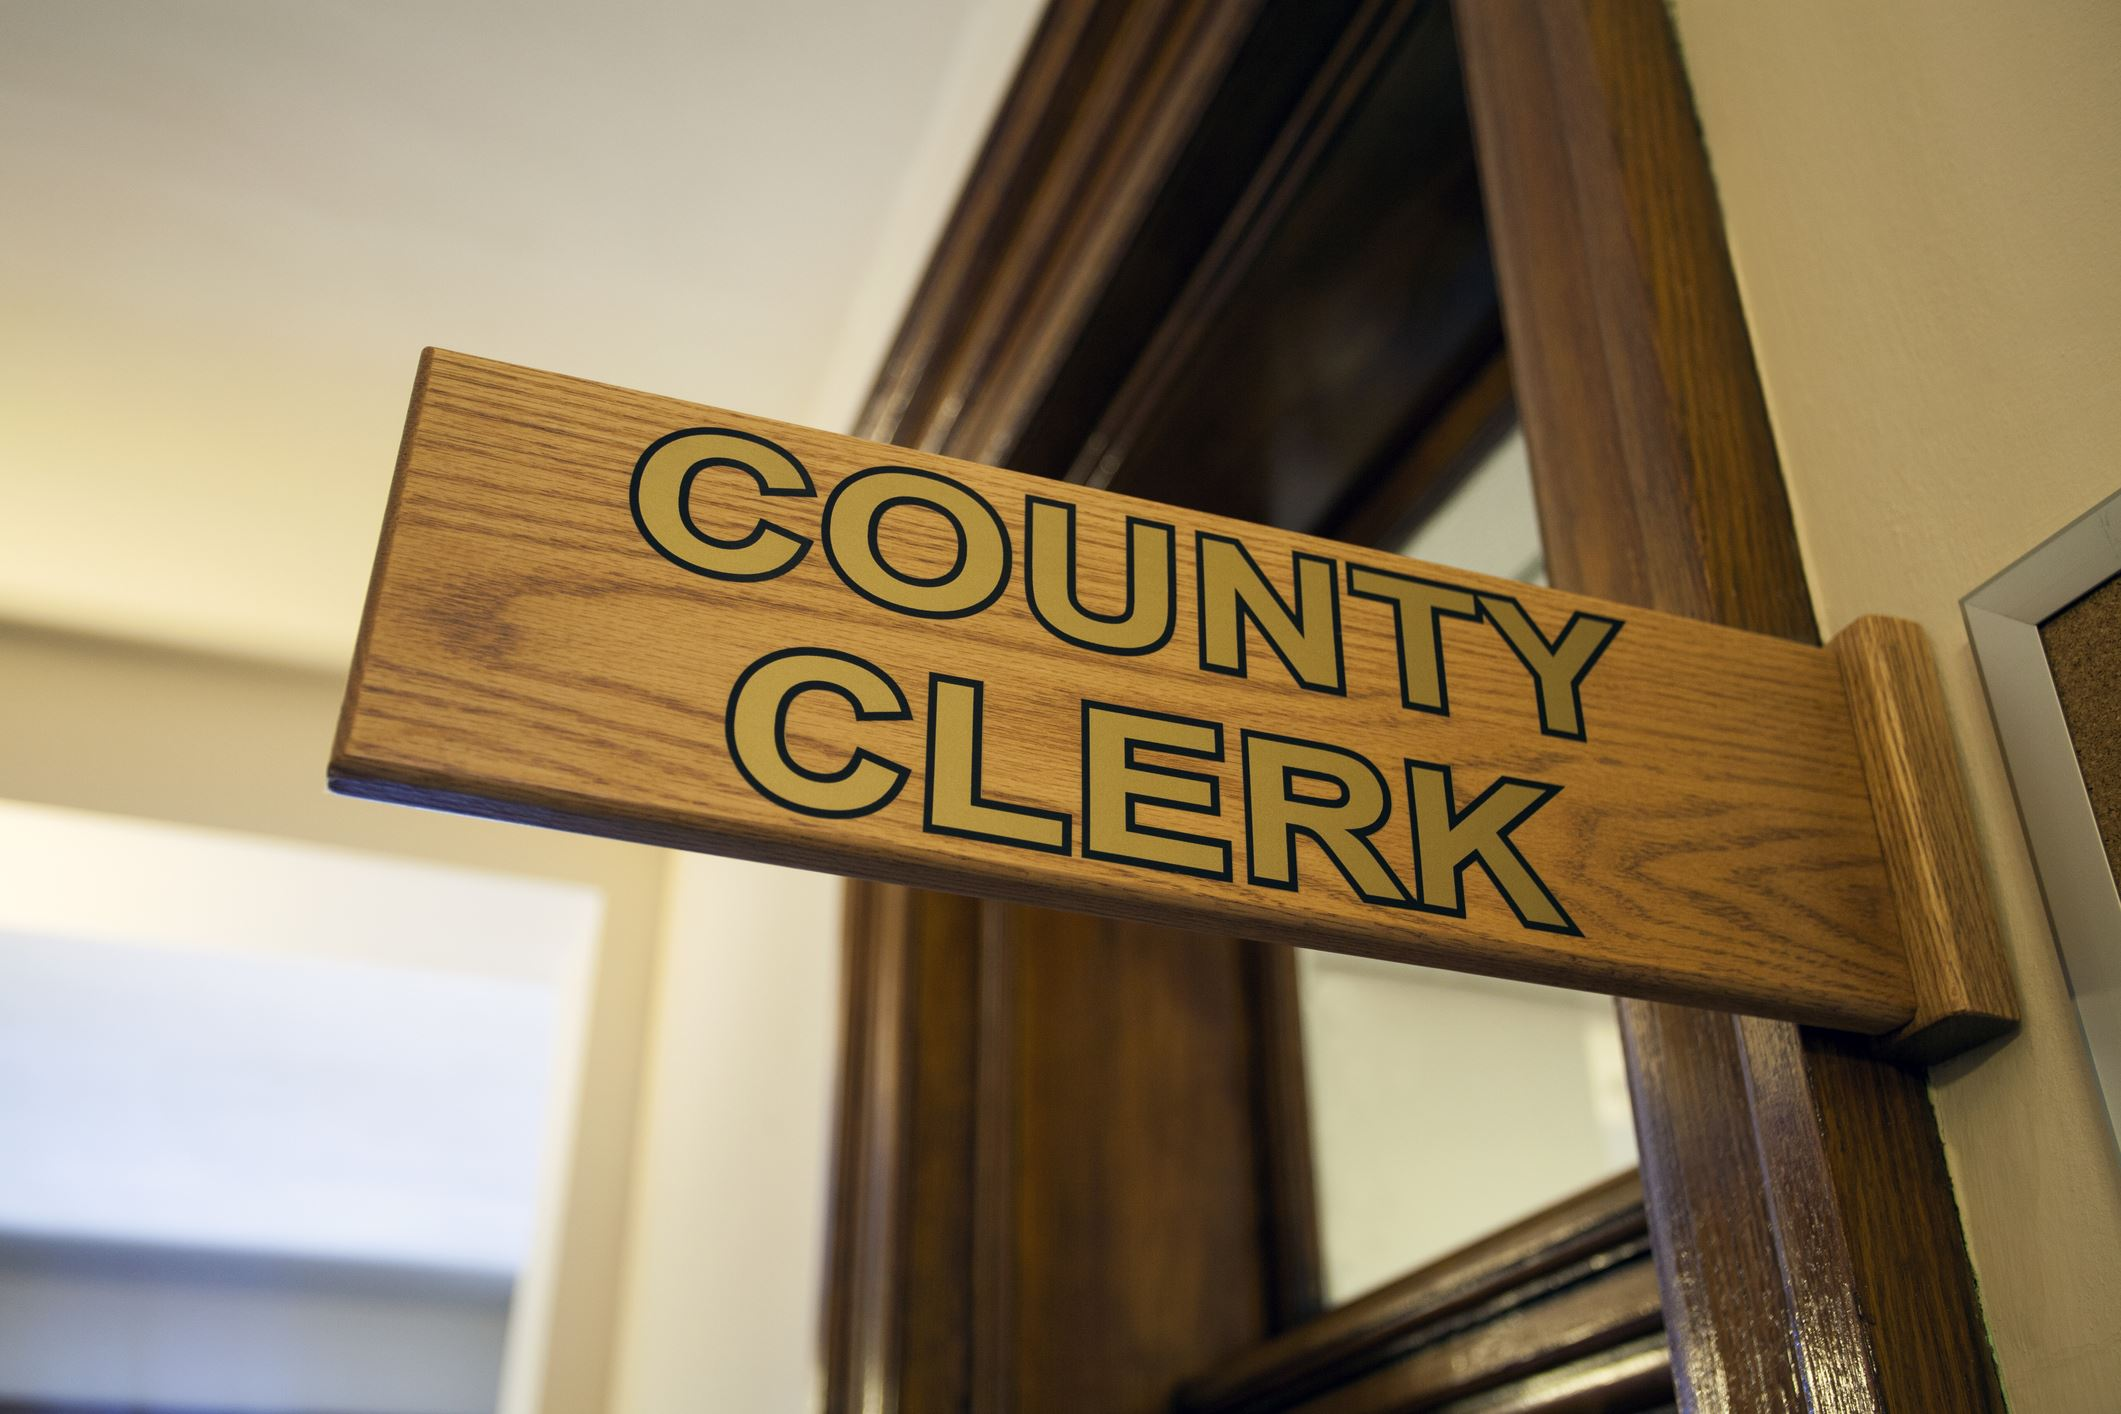 County Clerk sign photo istock